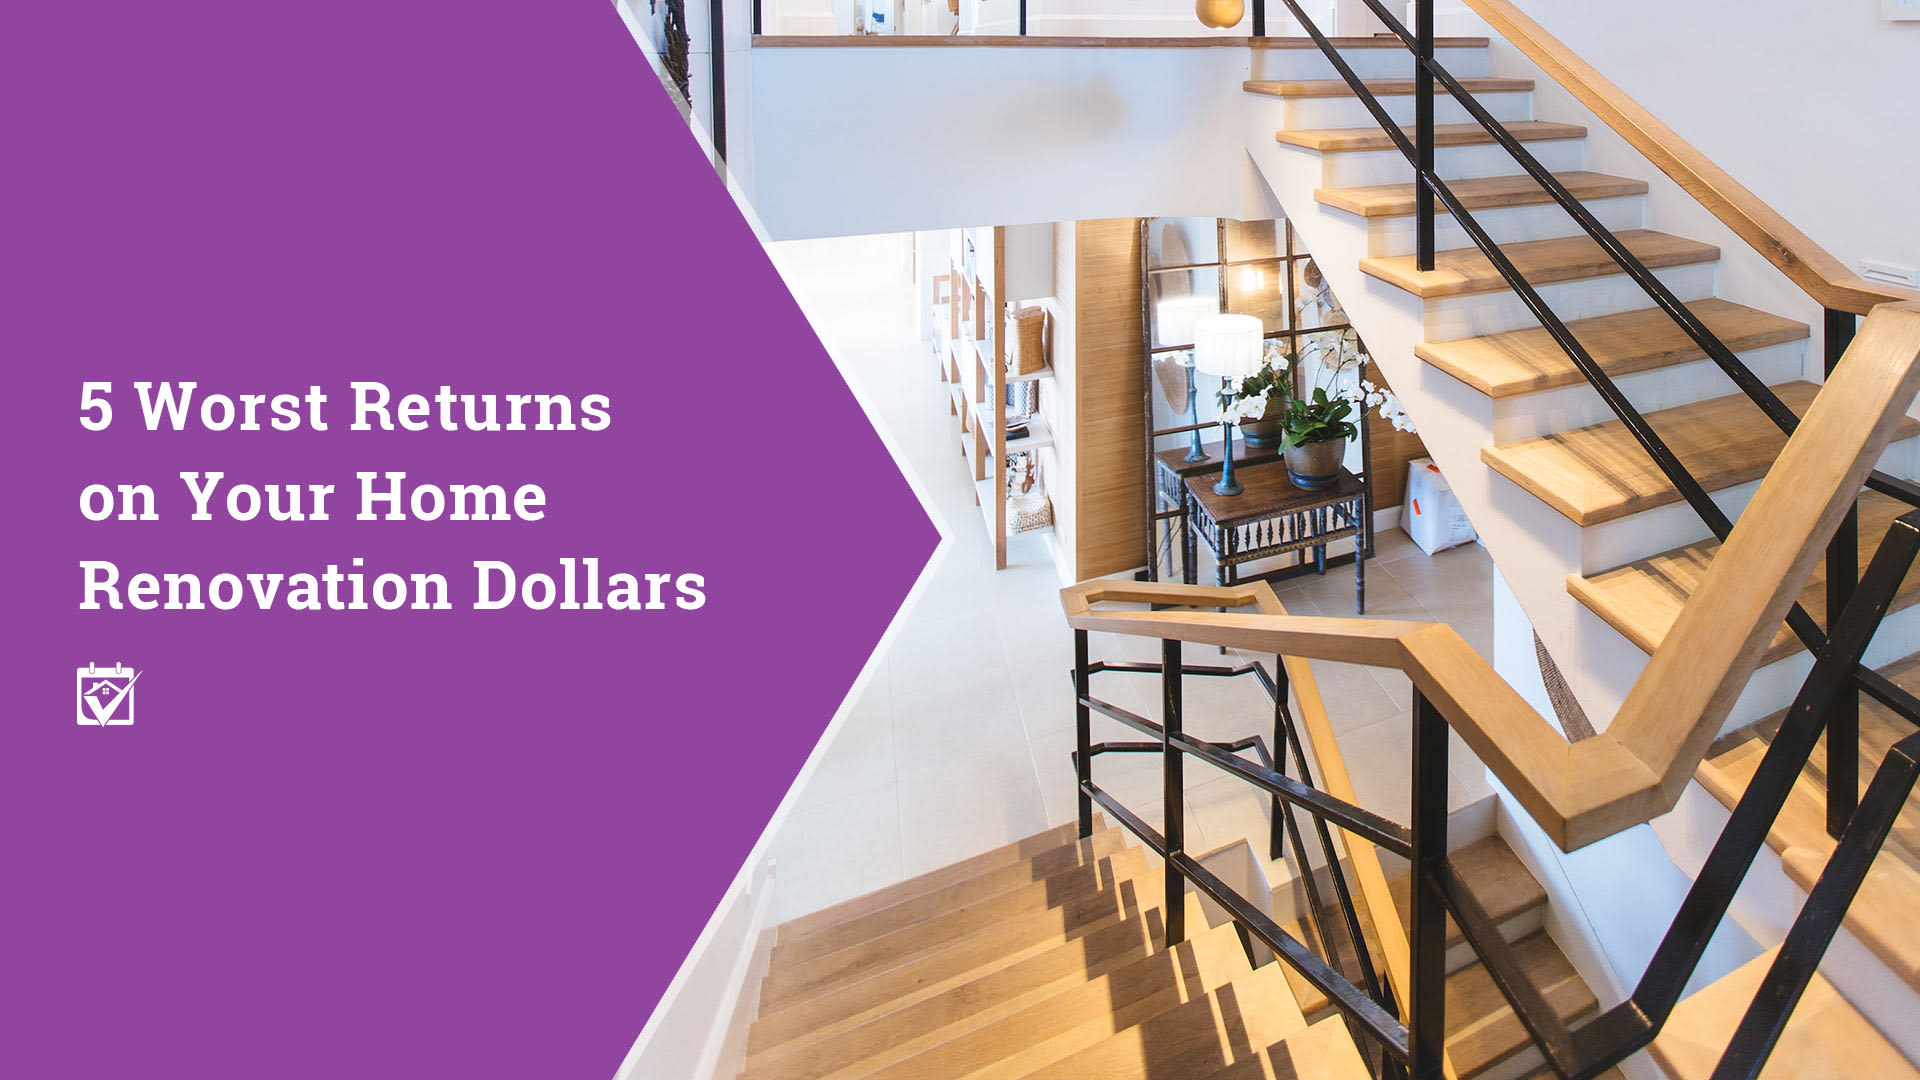 5 Worst Returns on Your Home Renovation Dollars